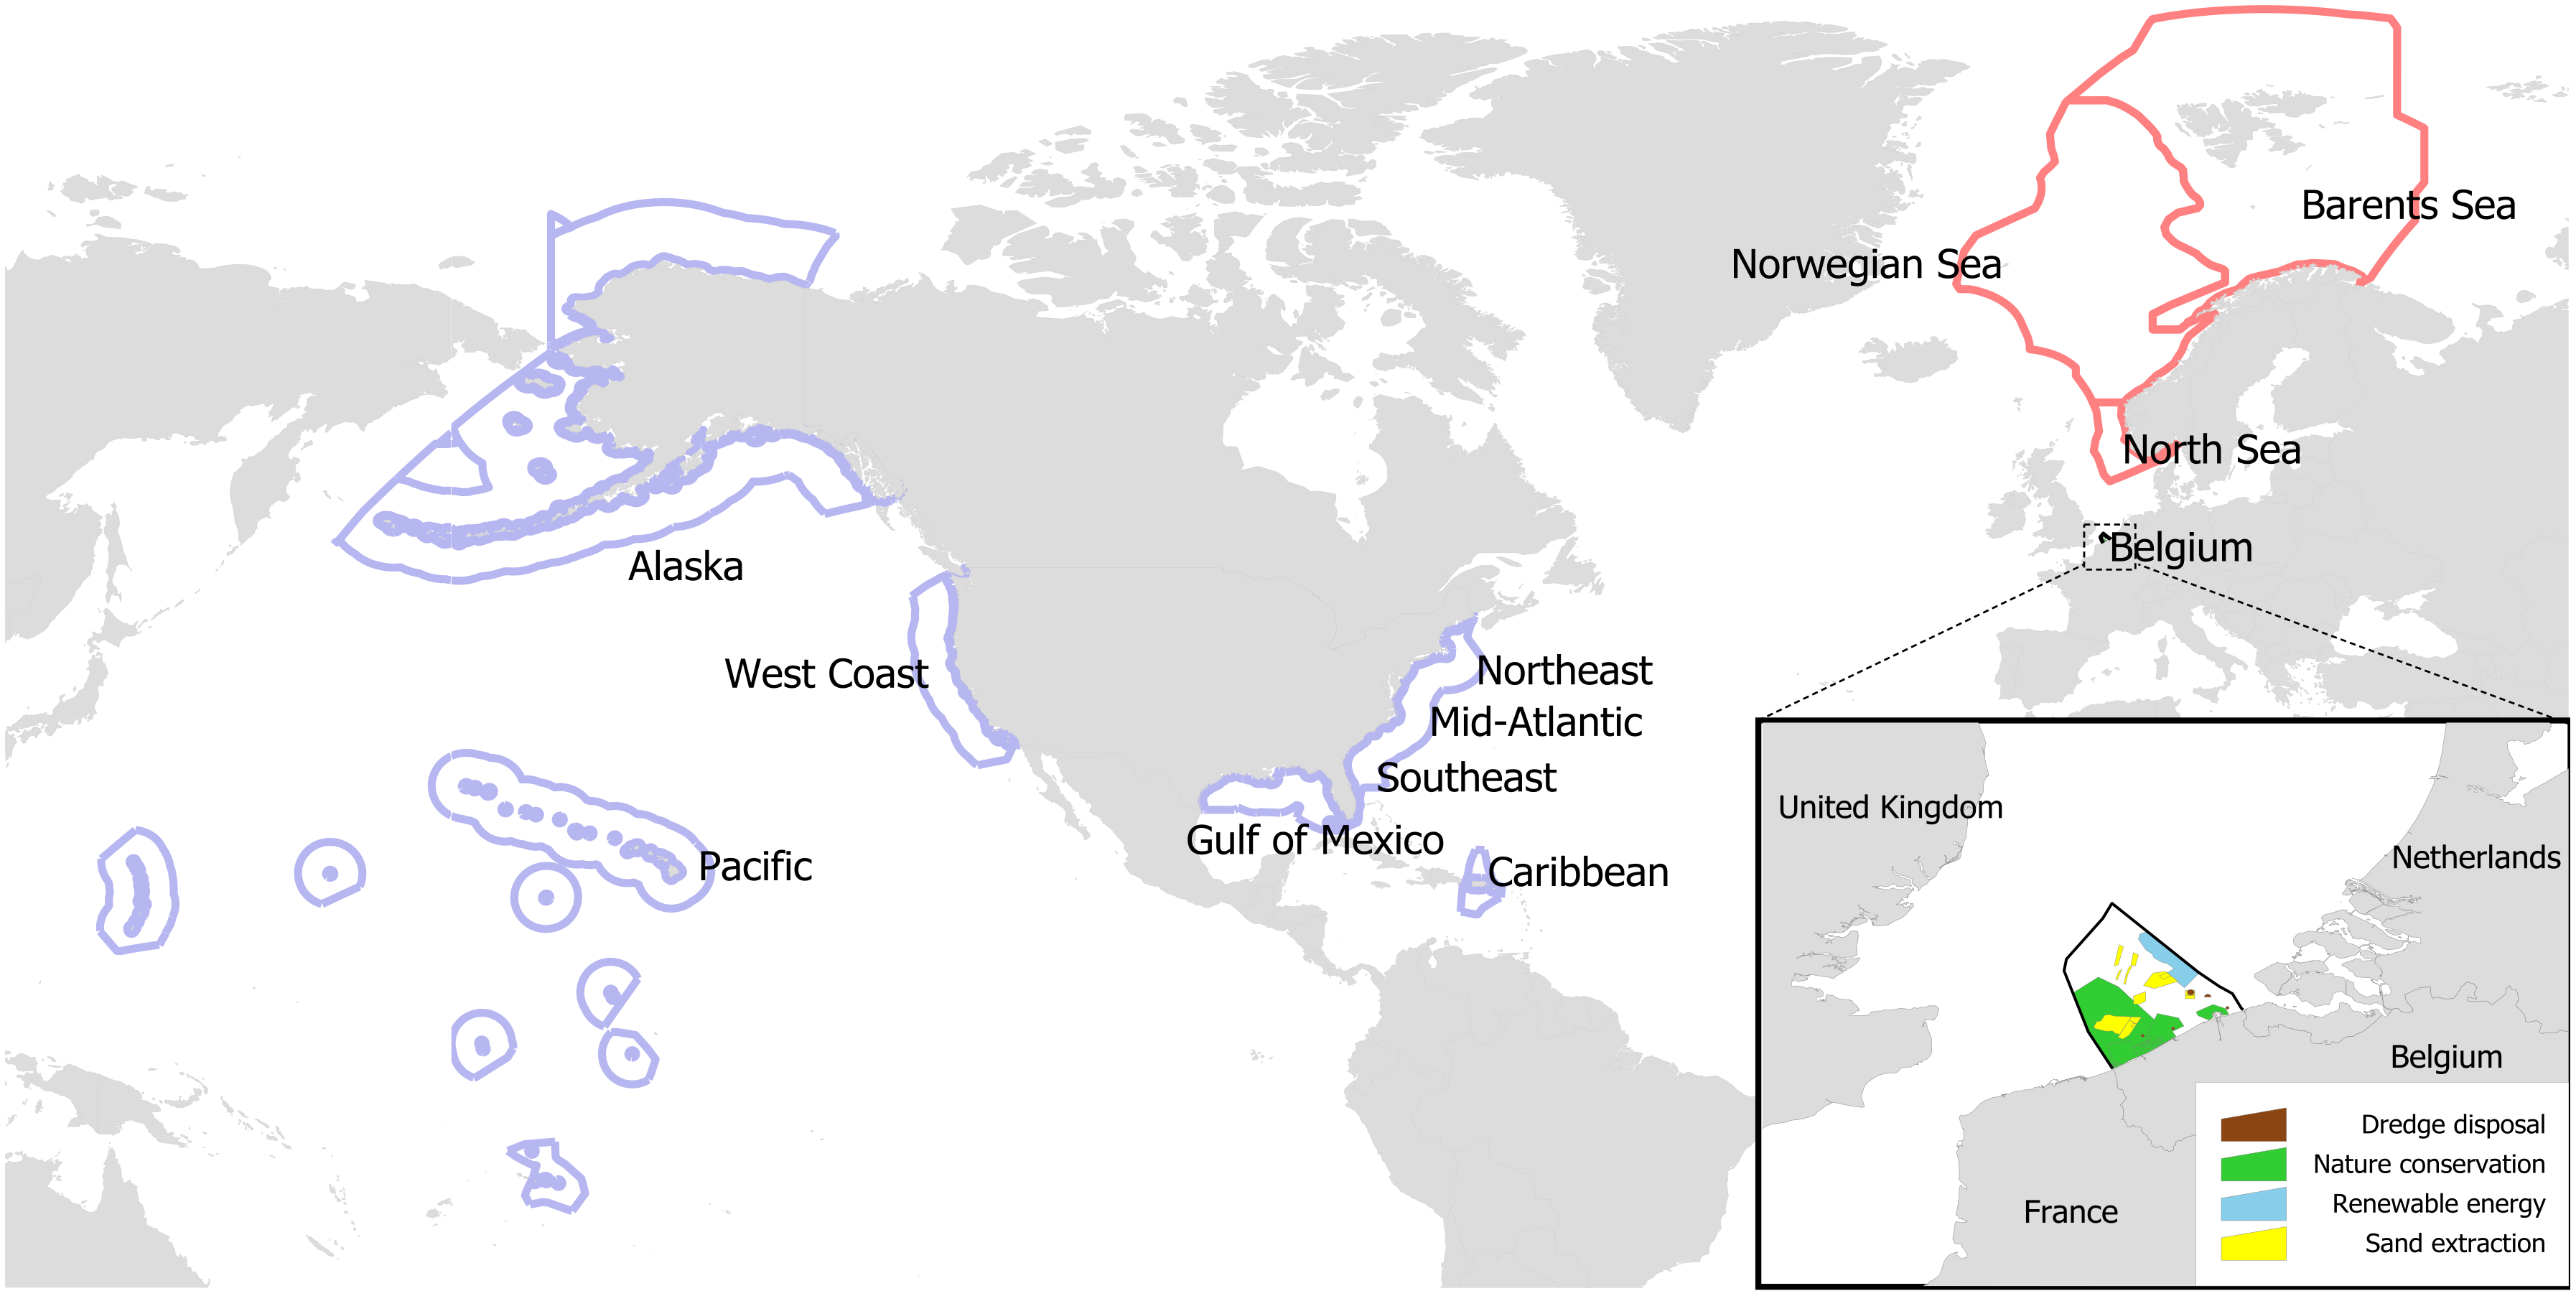 Marine spatial planning (MSP) study areas around the North Atlantic.